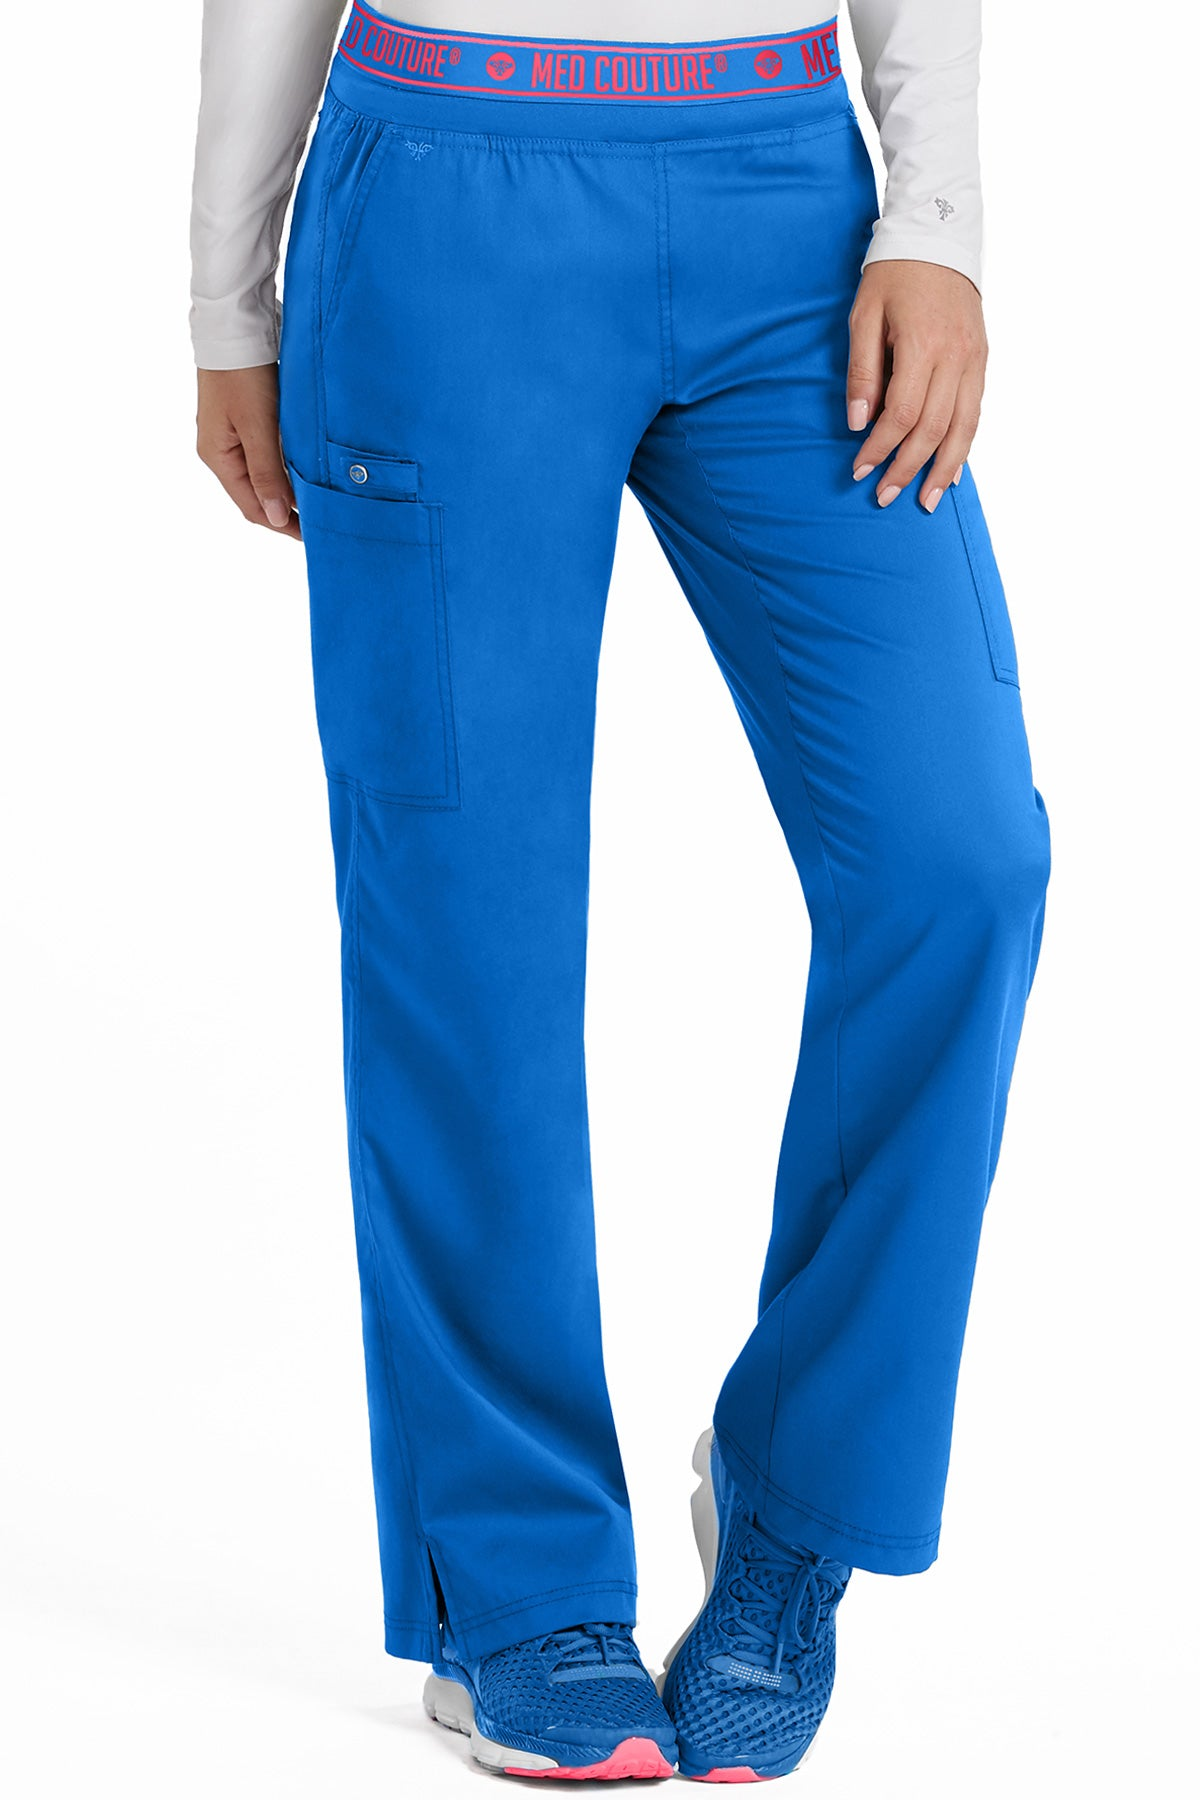 Med Couture Touch 7739 Petite Yoga 2 Cargo Pocket Pant